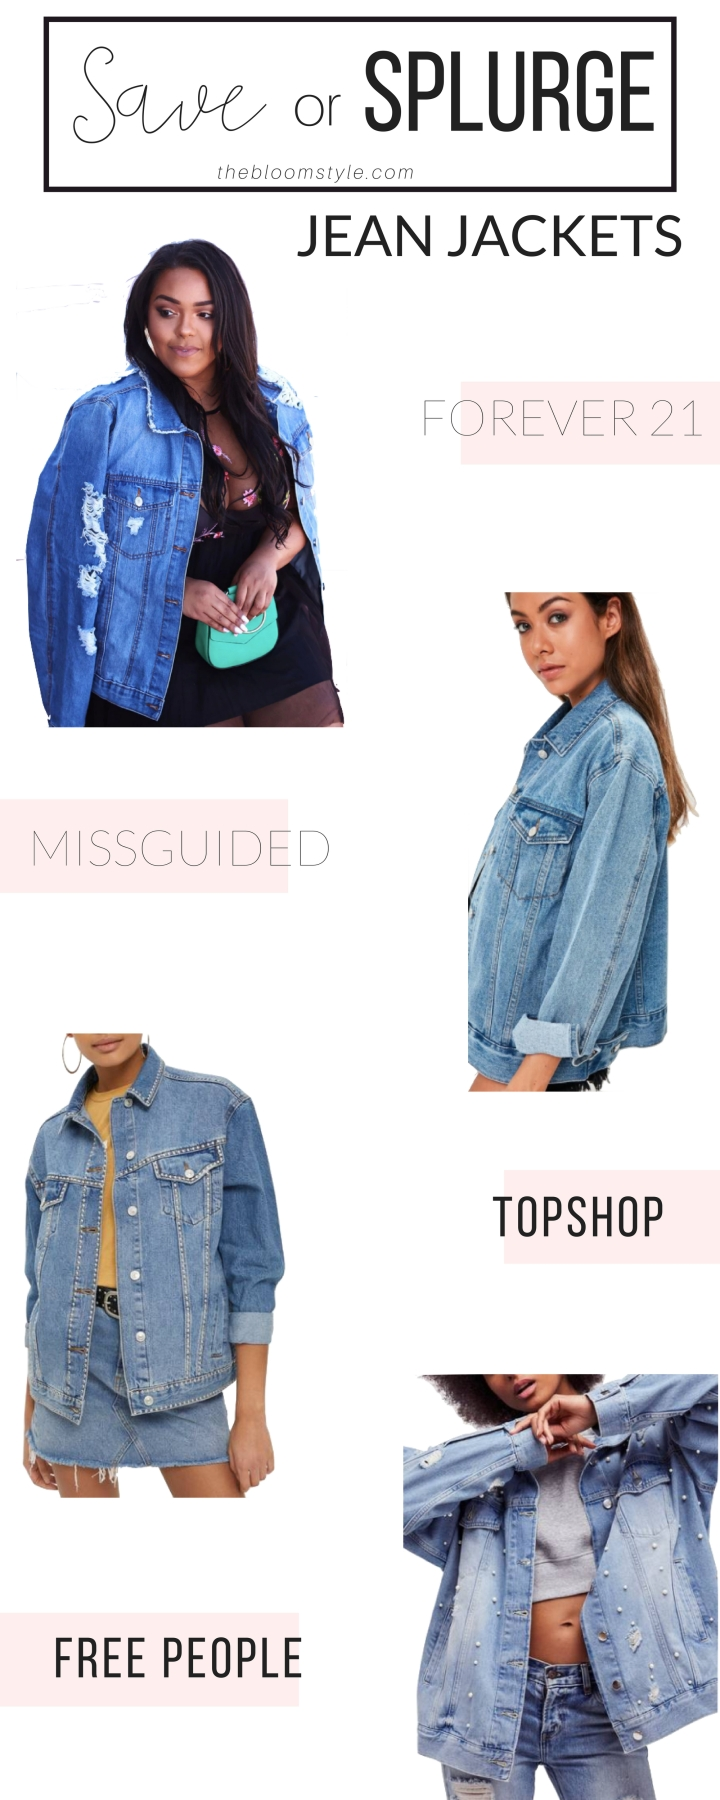 Save or Splurge: Jean Jackets